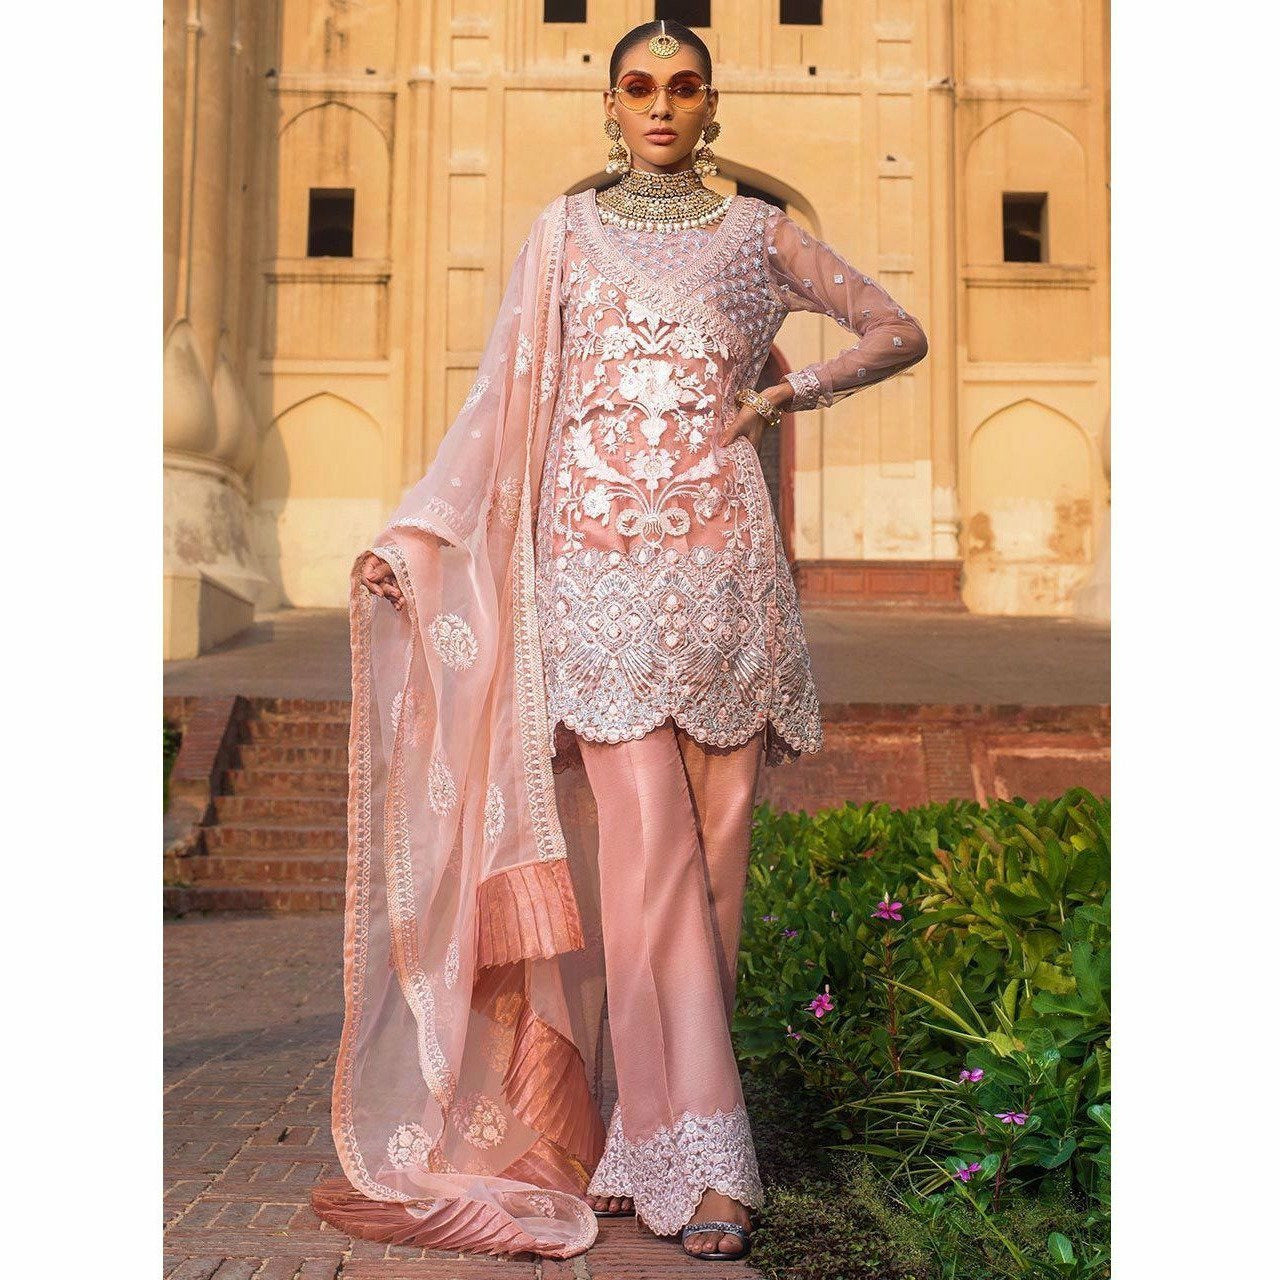 pakistani wedding clothes, pakistani Designer dresses for wedding